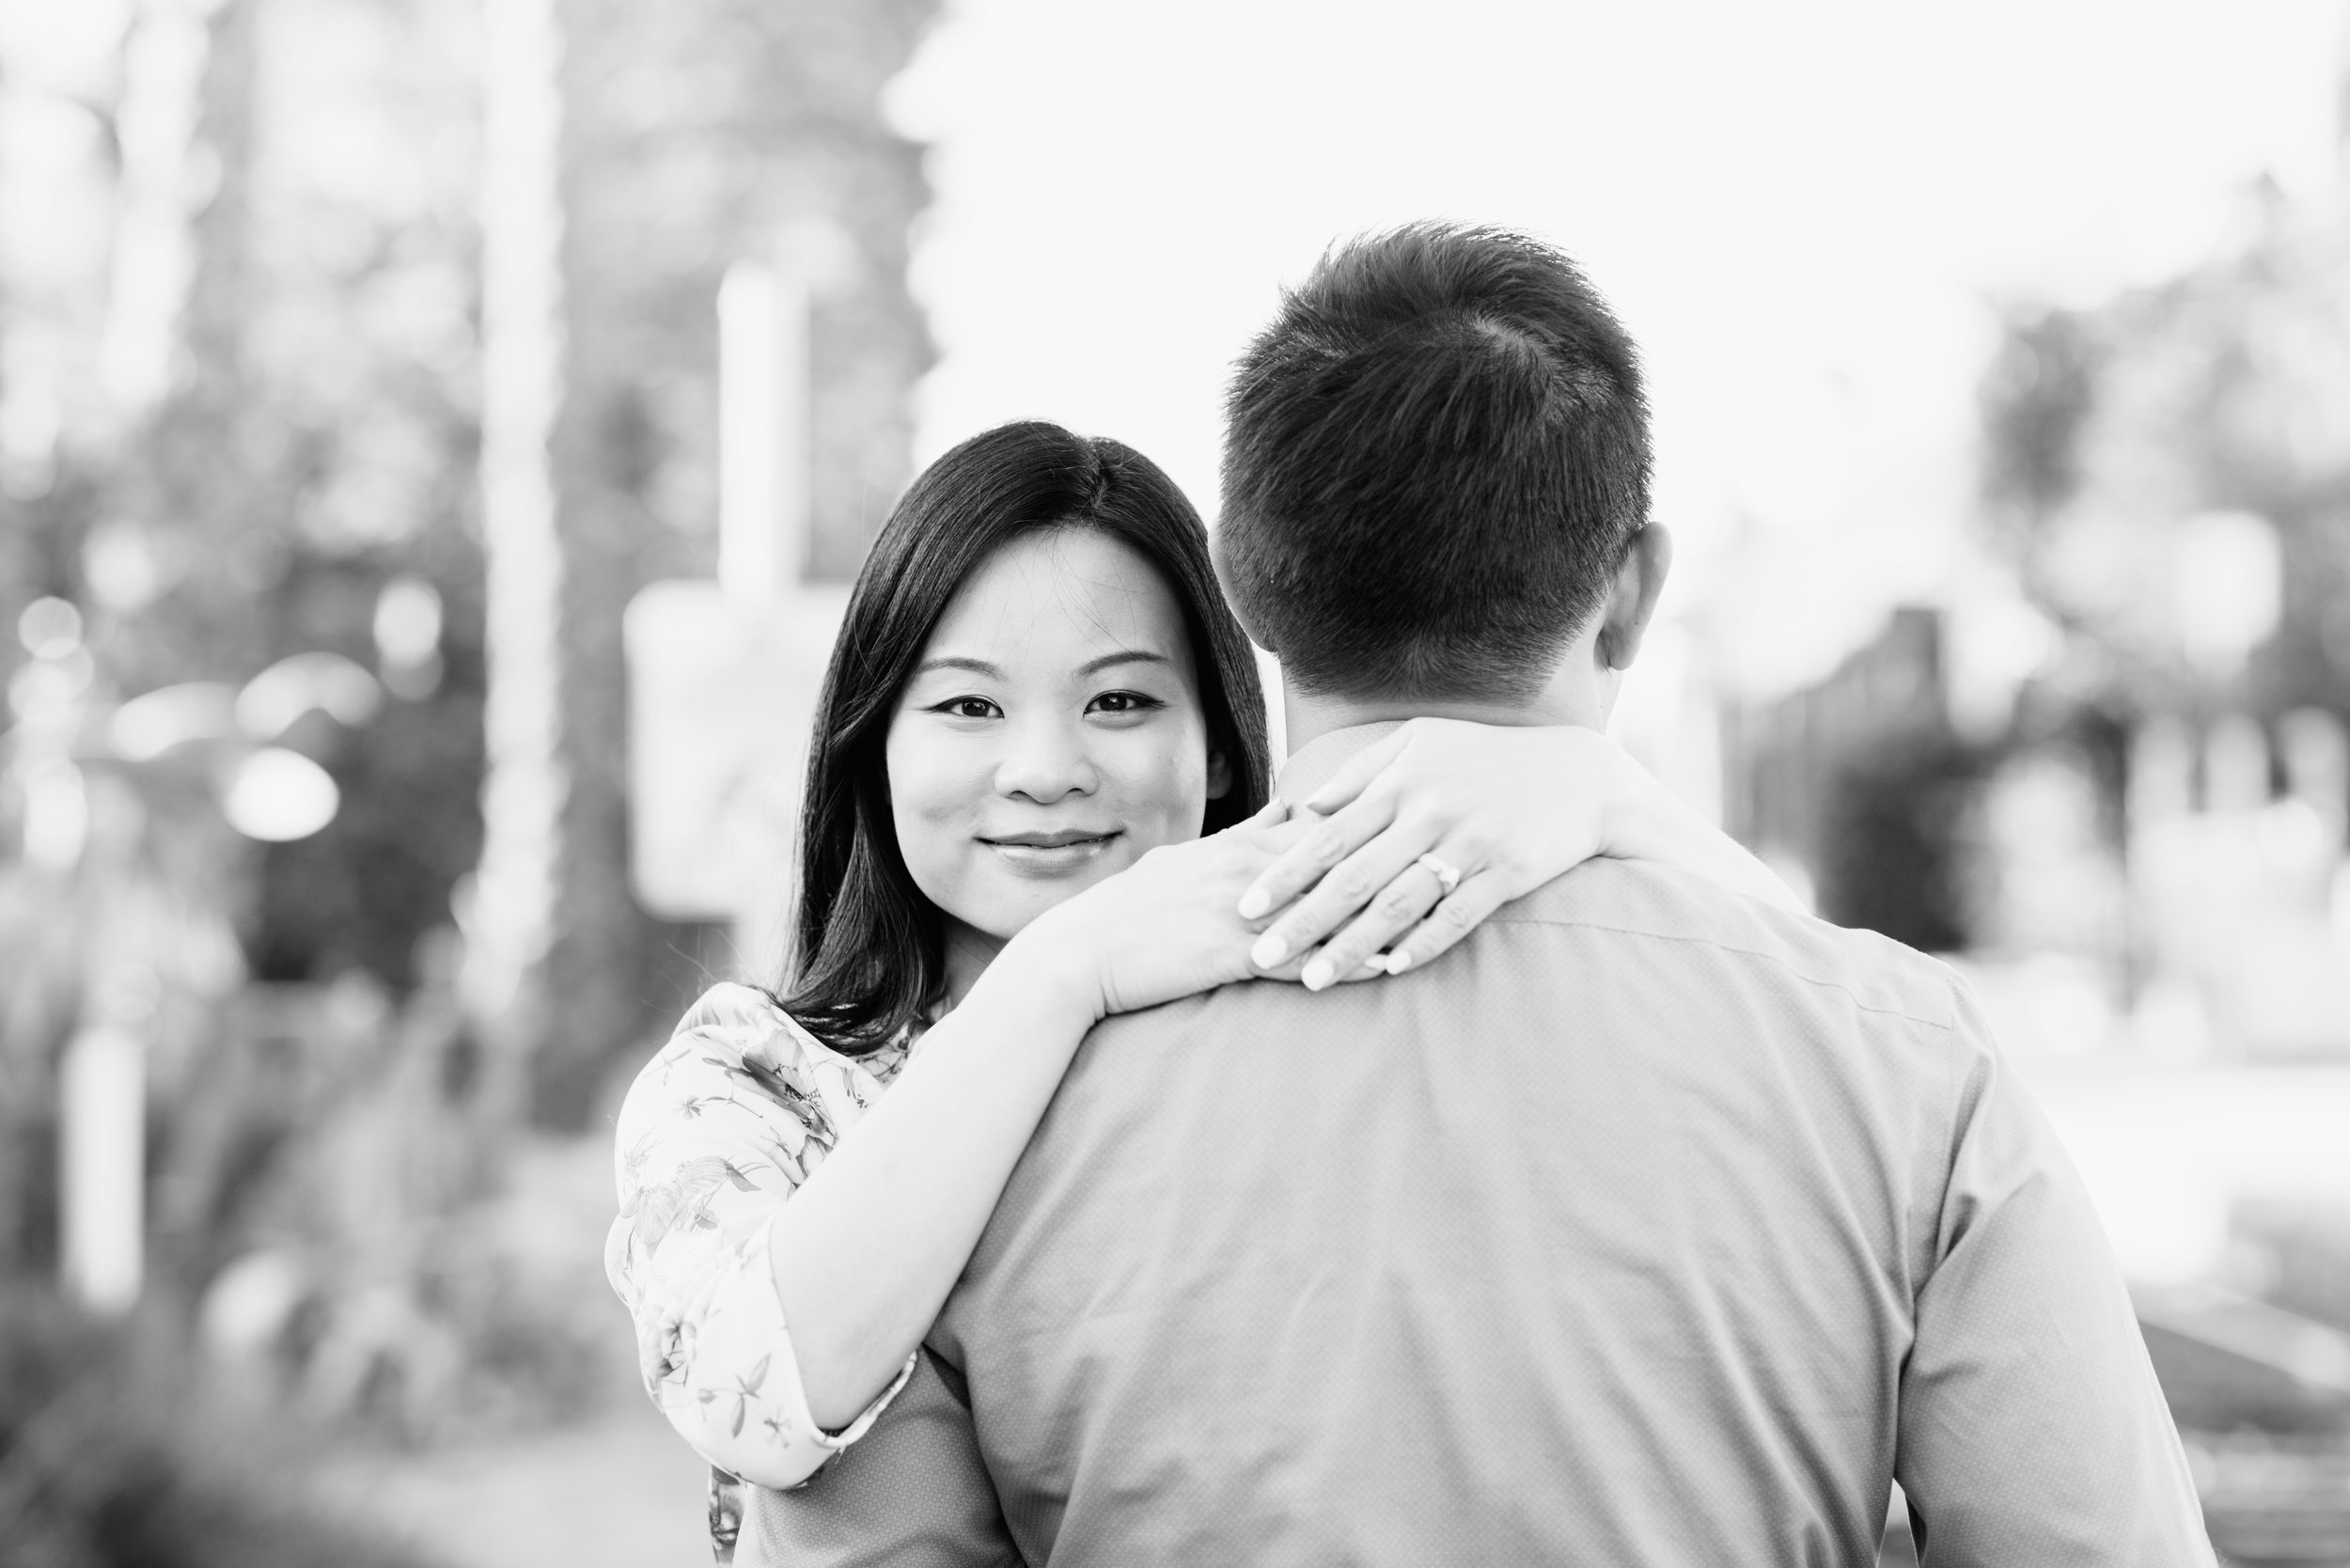 jennifer-jayn-photography-san-juan-capistrano-engagement-session-09.jpg